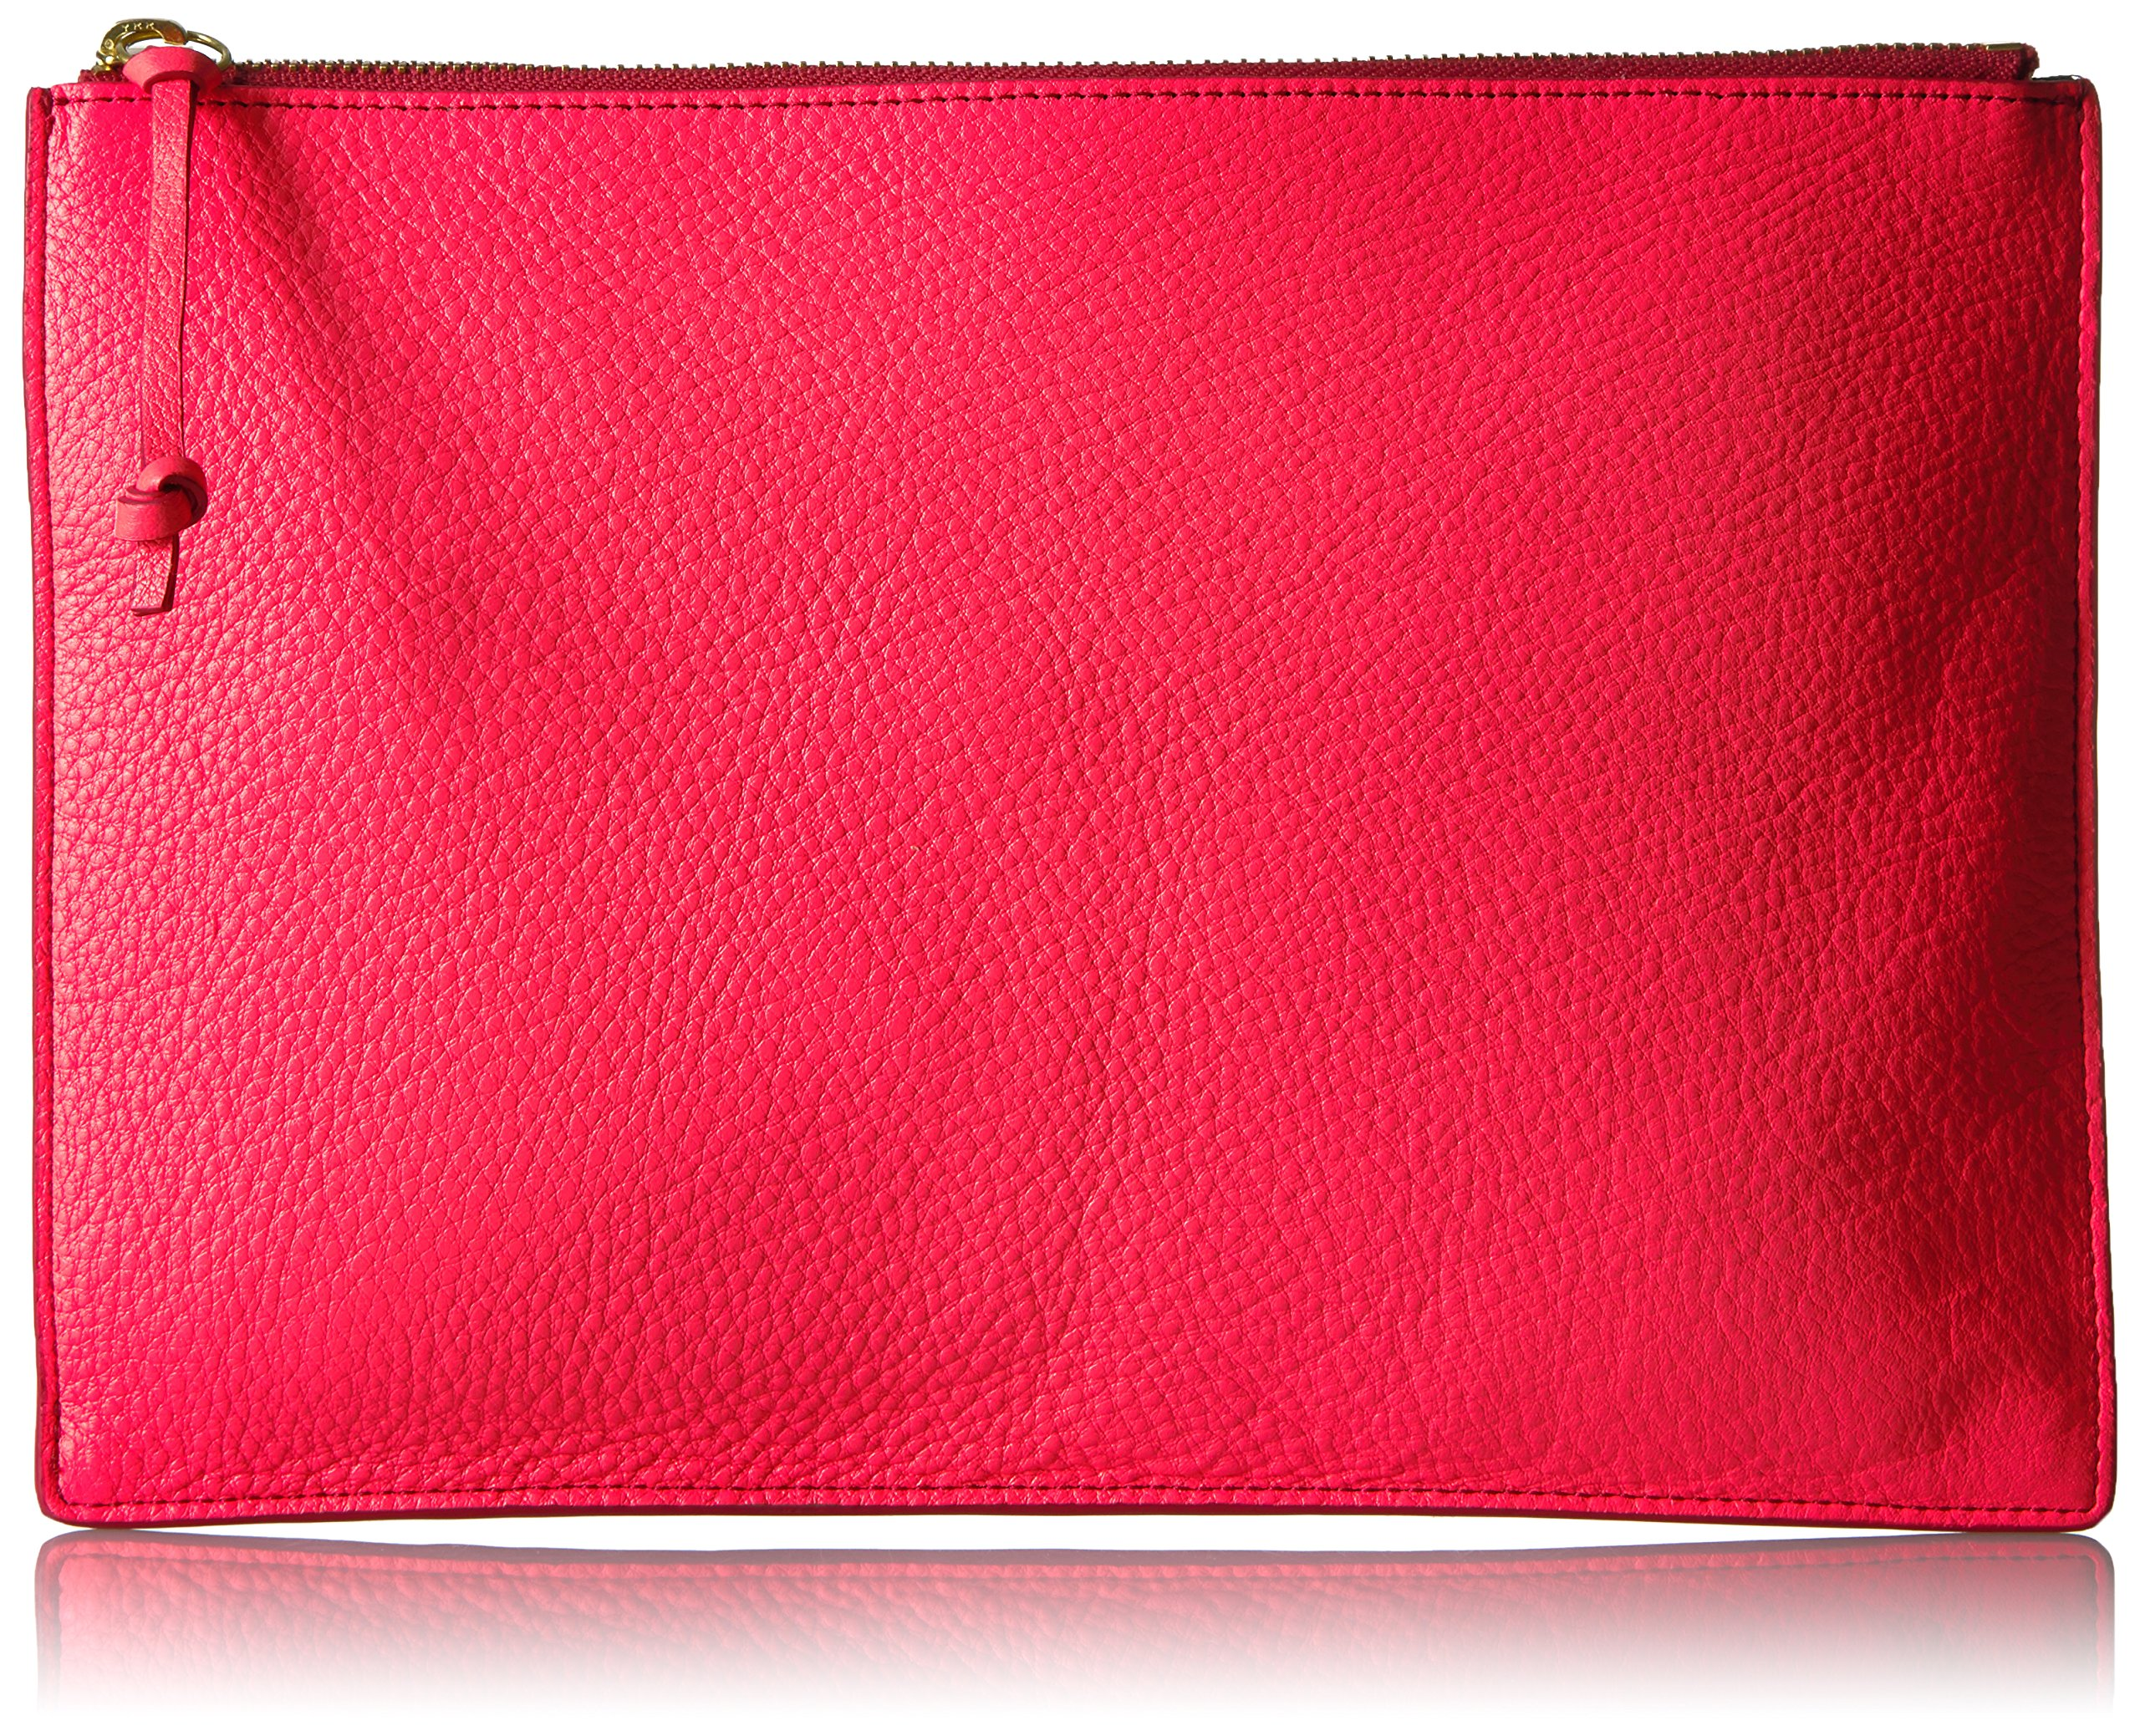 Fossil Emma Leather Tech Pouch, neon coral